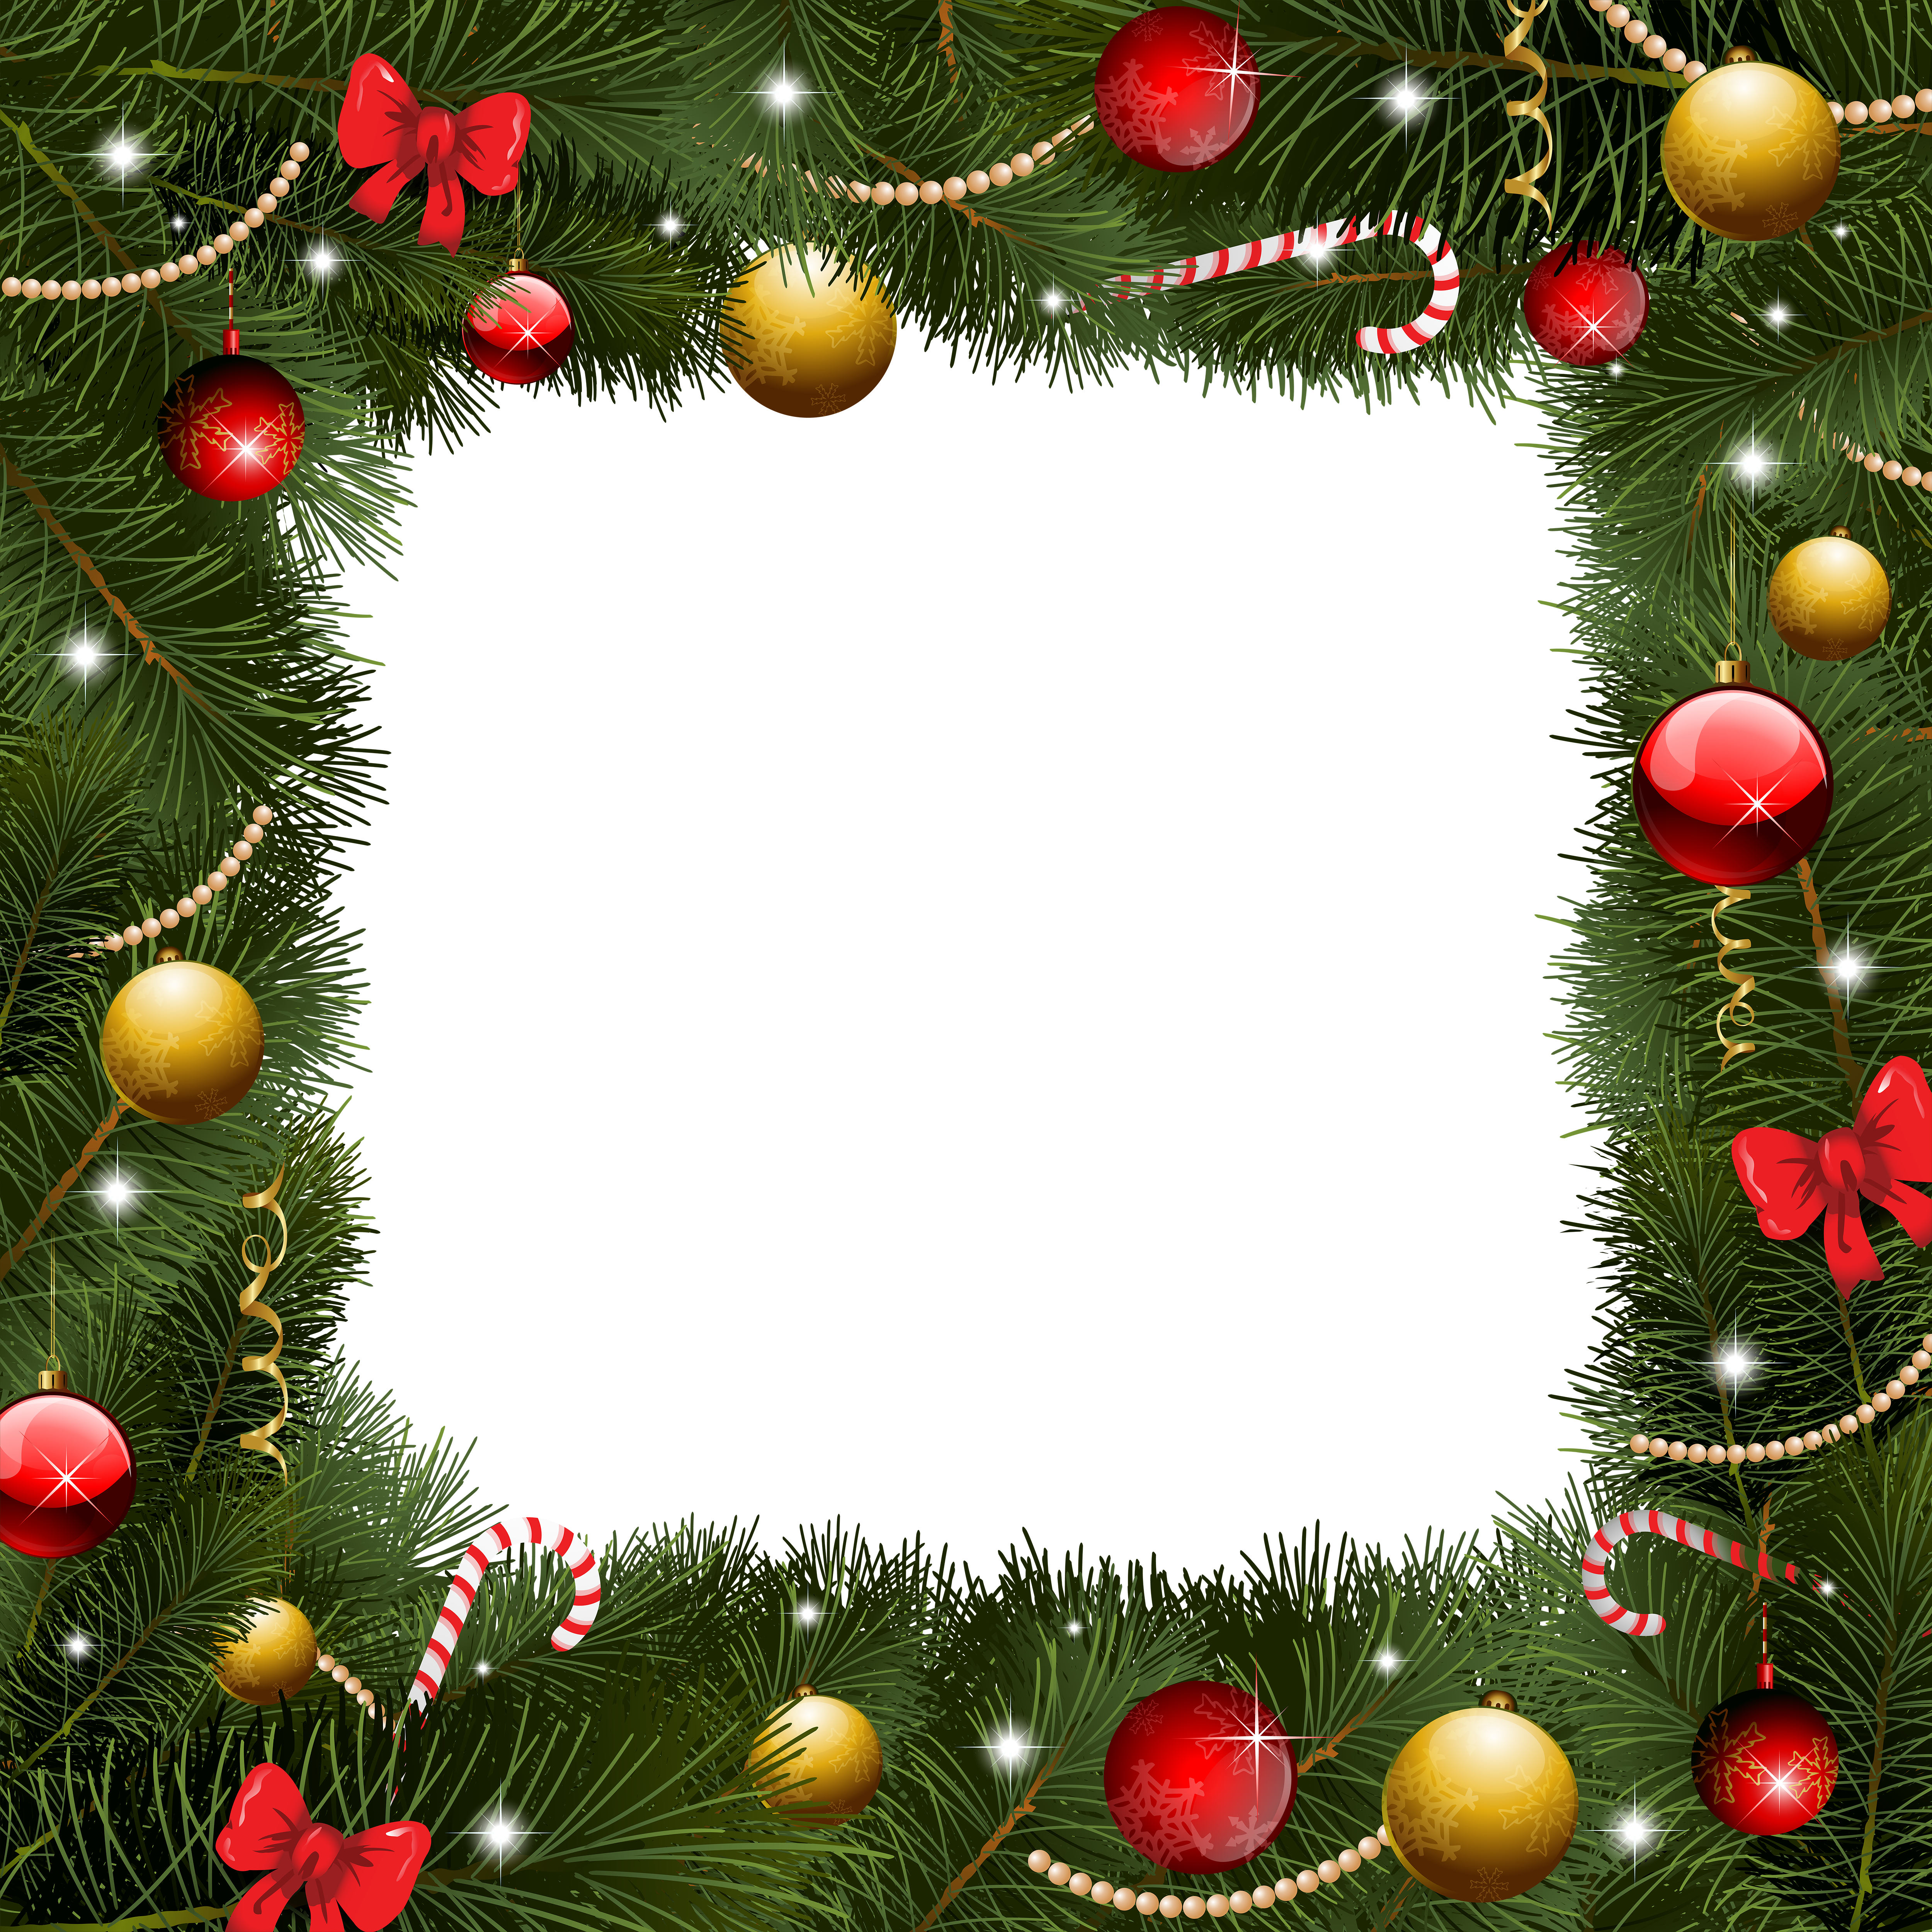 Garland clipart transparent background christmas. Borders images acur lunamedia